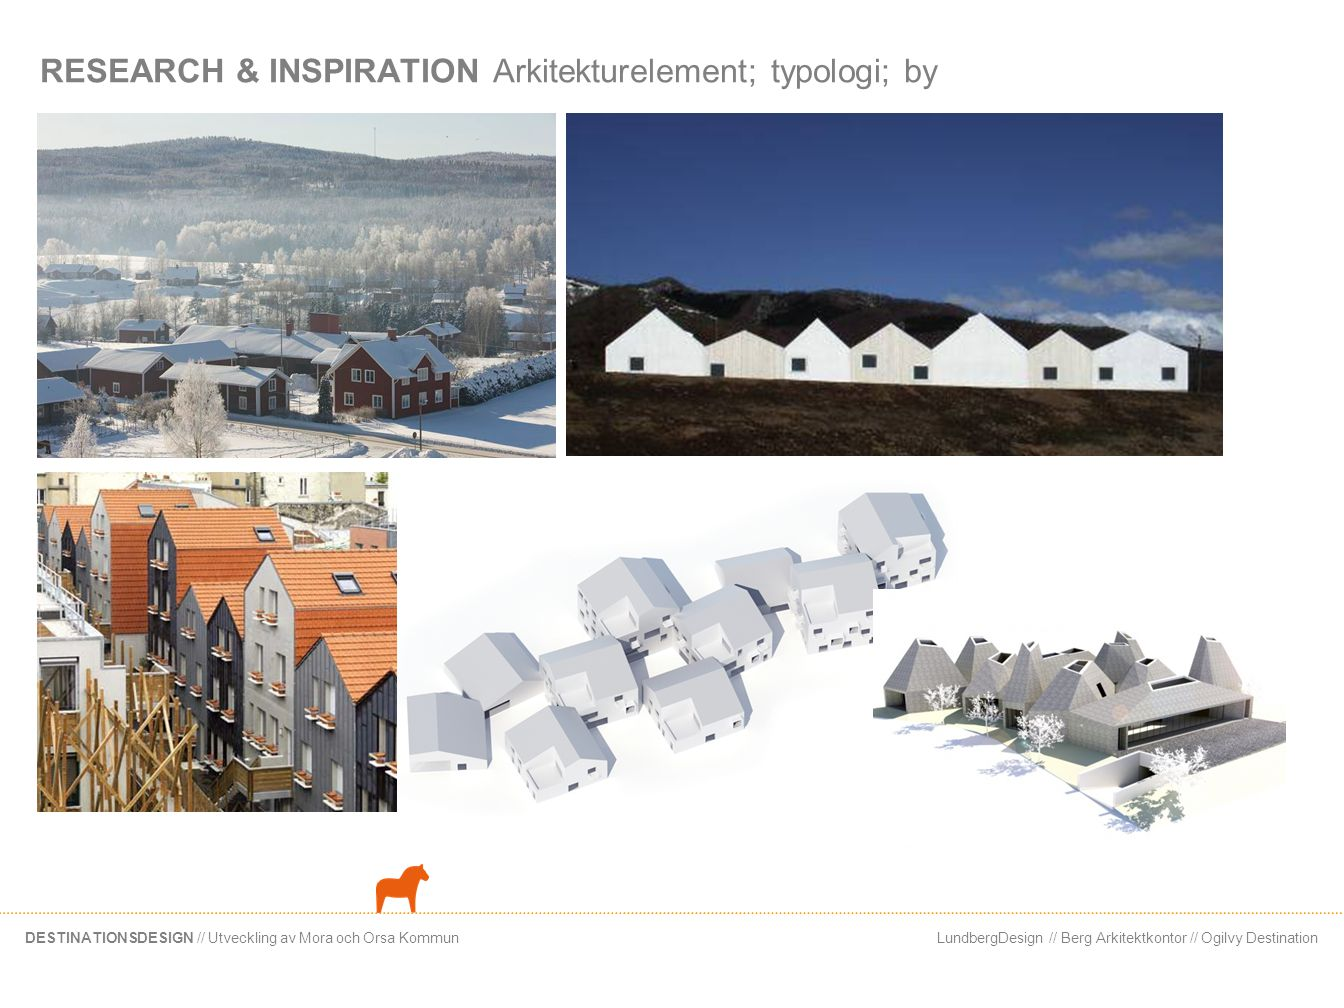 RESEARCH & INSPIRATION Arkitekturelement; typologi; by